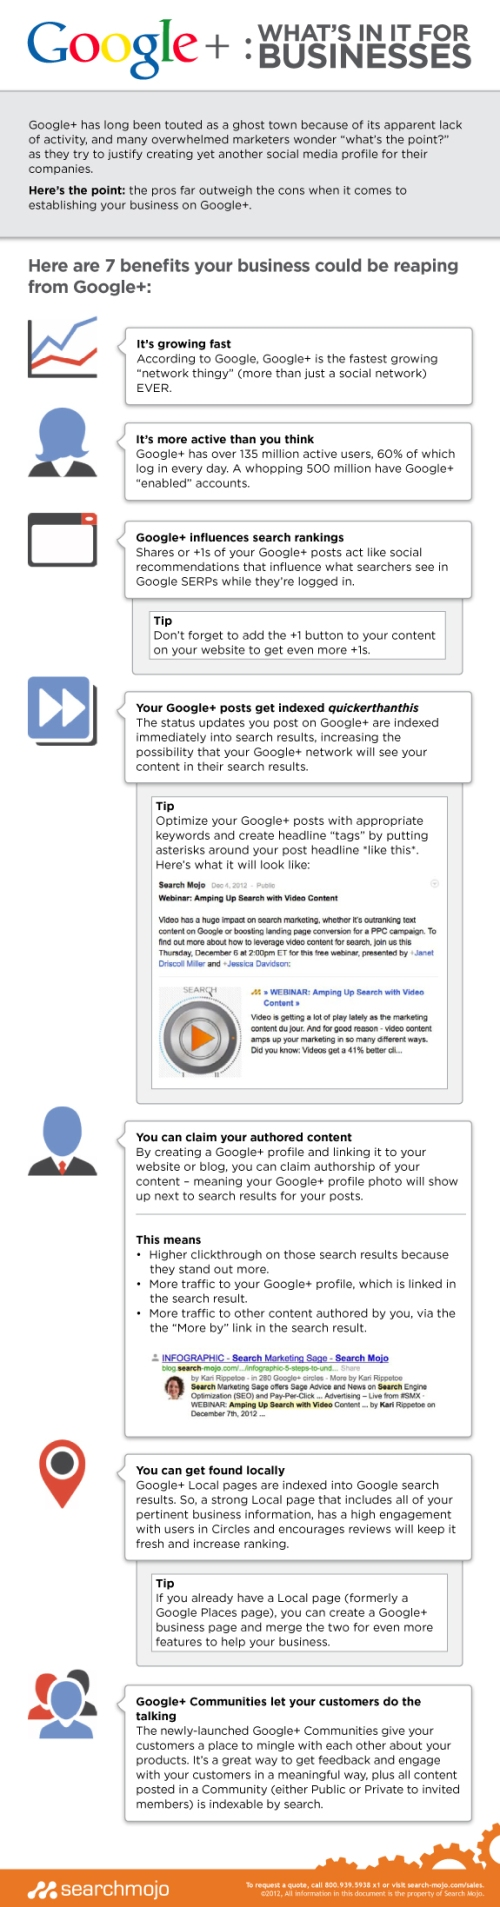 Search-Mojo_GooglePlus_for_Business_Infographic